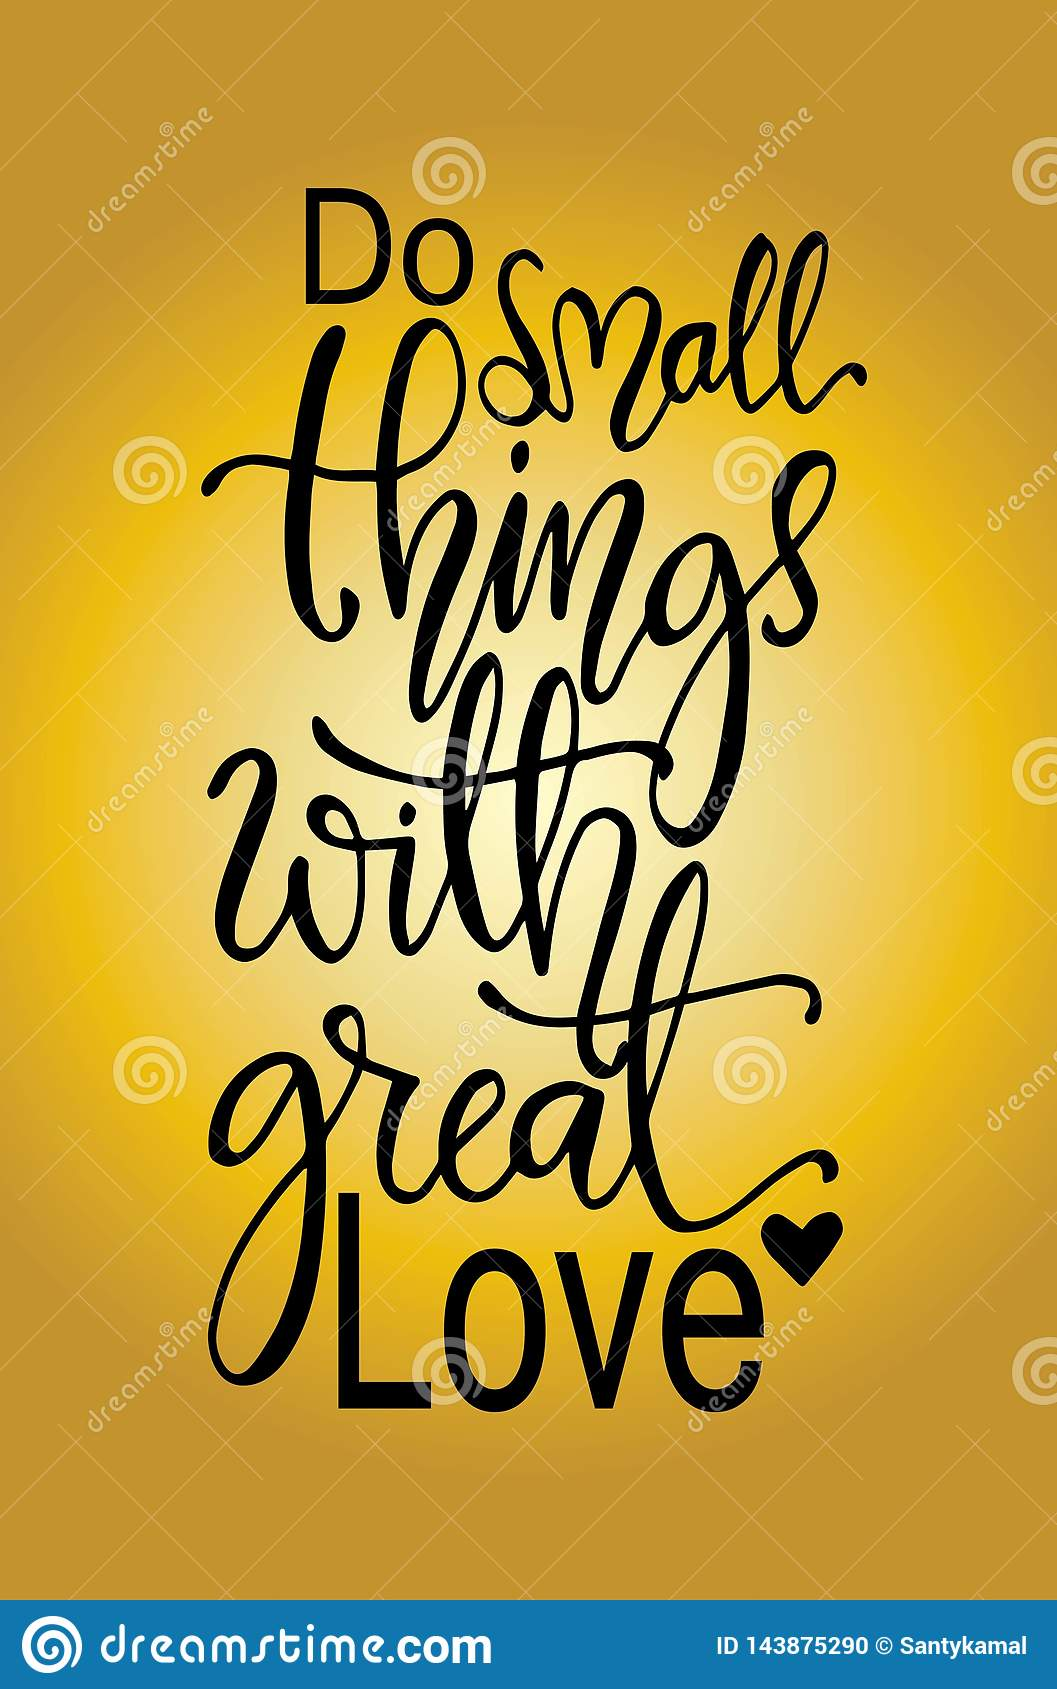 Do small things with great love, hand drawn typography poster. T shirt hand lettered calligraphic design